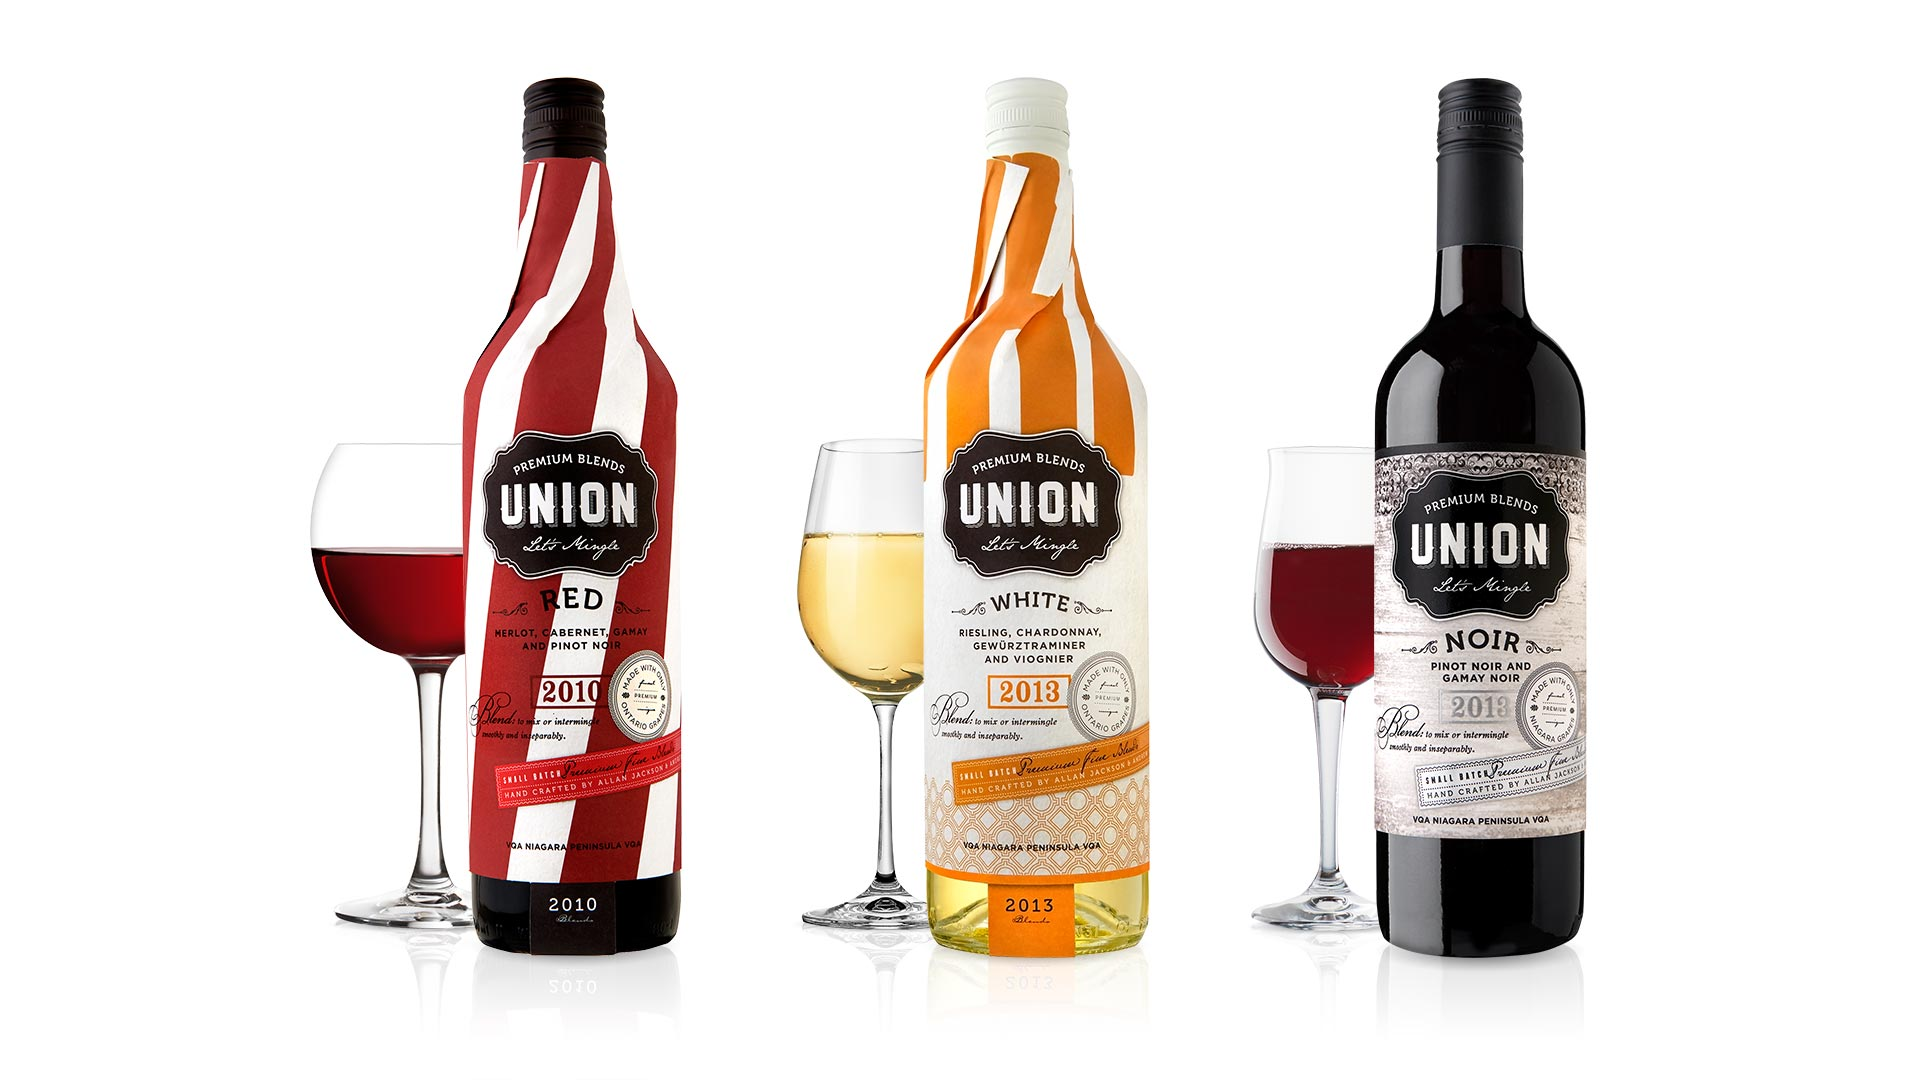 union-wines-red-white-noir-group